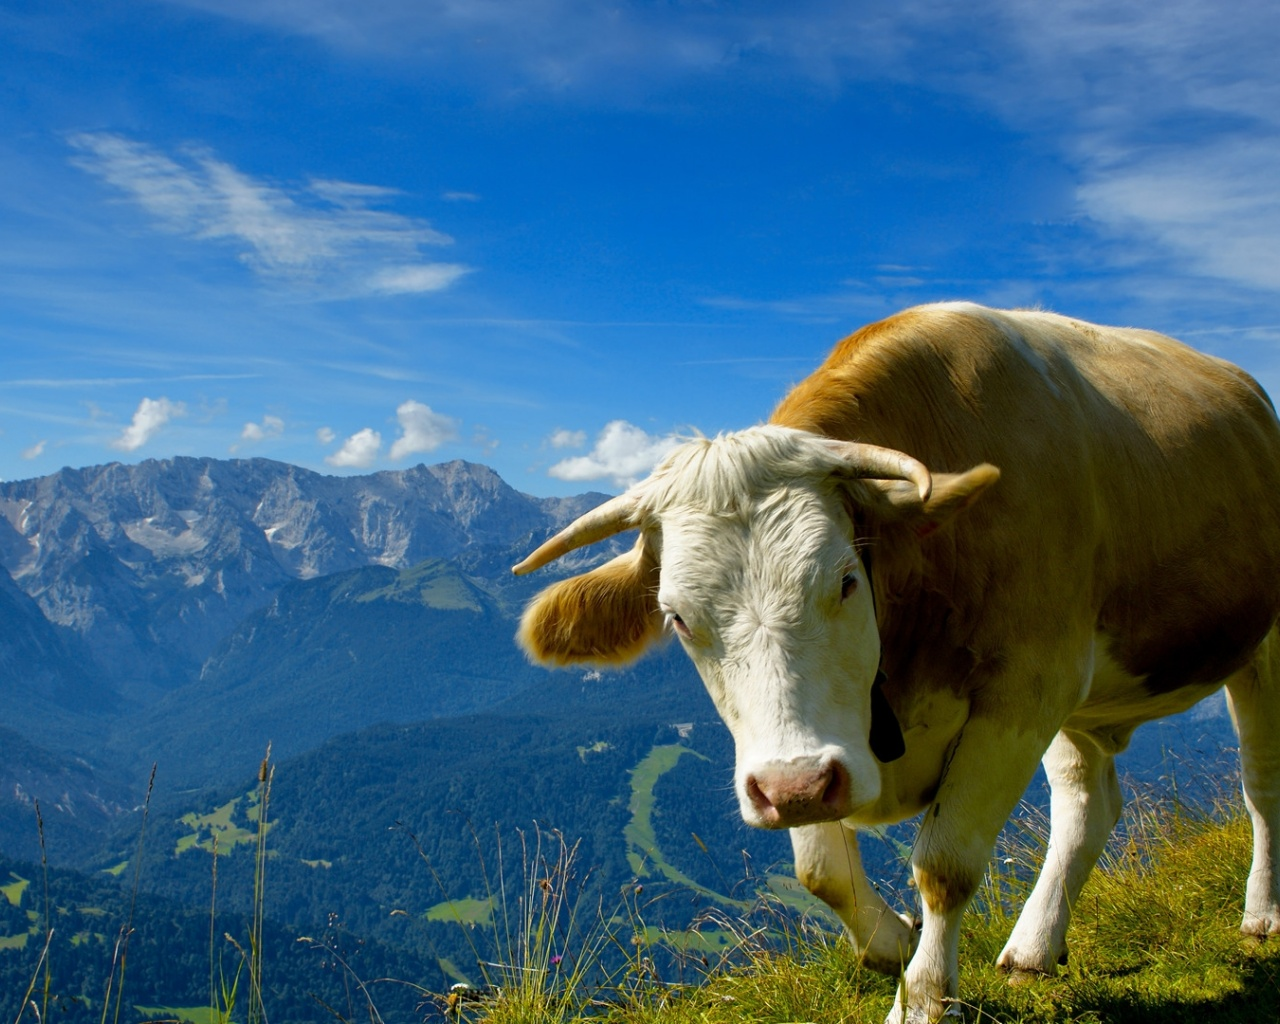 click to free download the wallpaper--Cute Animals Post, Peaceful Cow, the Blue Sky, Shall Strike a Deep Impression 1280X1024 free wallpaper download